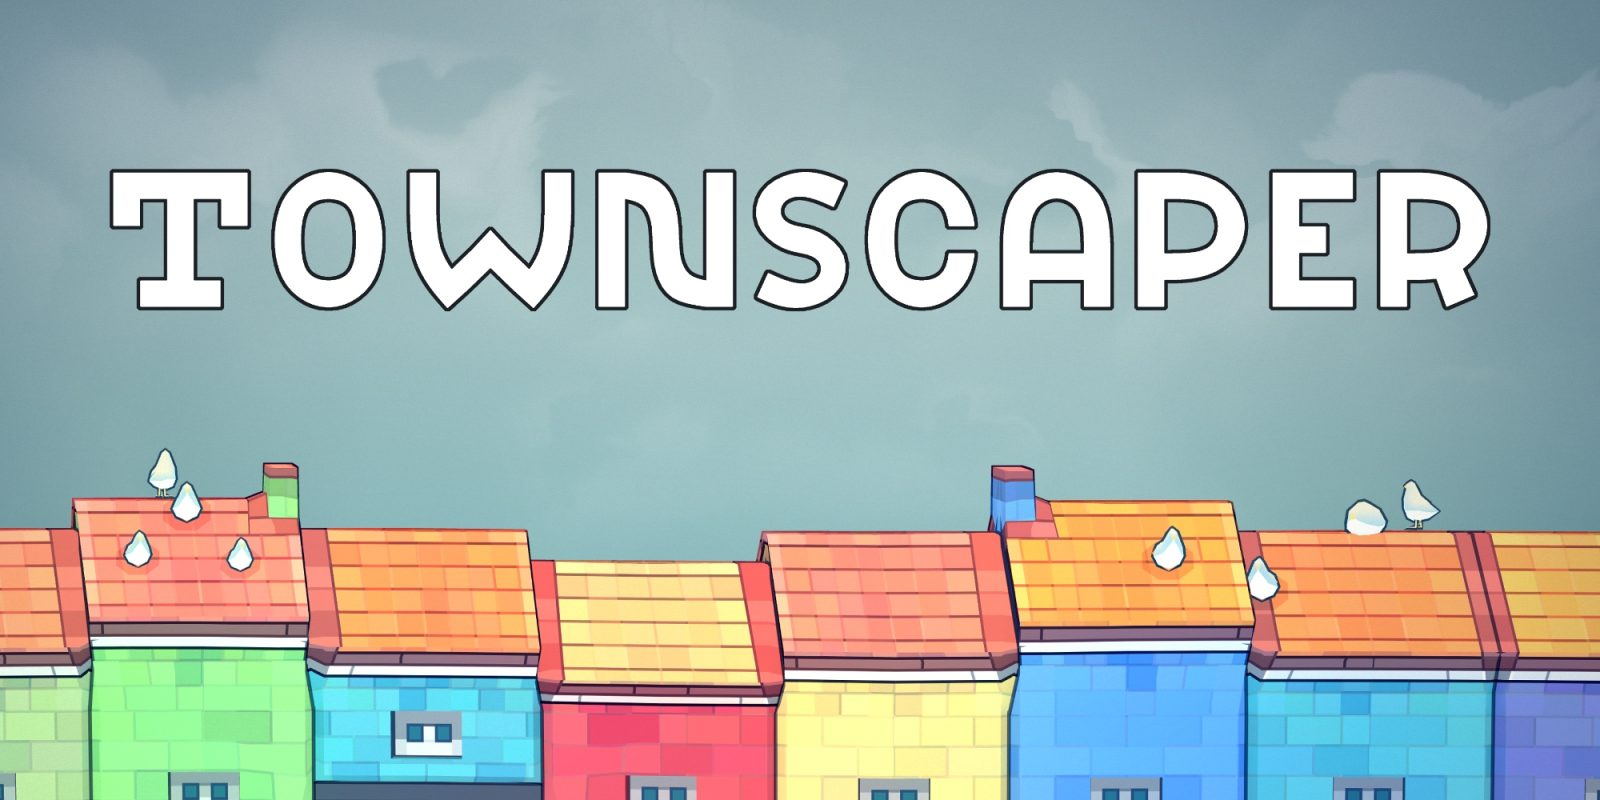 Build your own town with Townscaper for iPhone, iPad, and M1 Macs